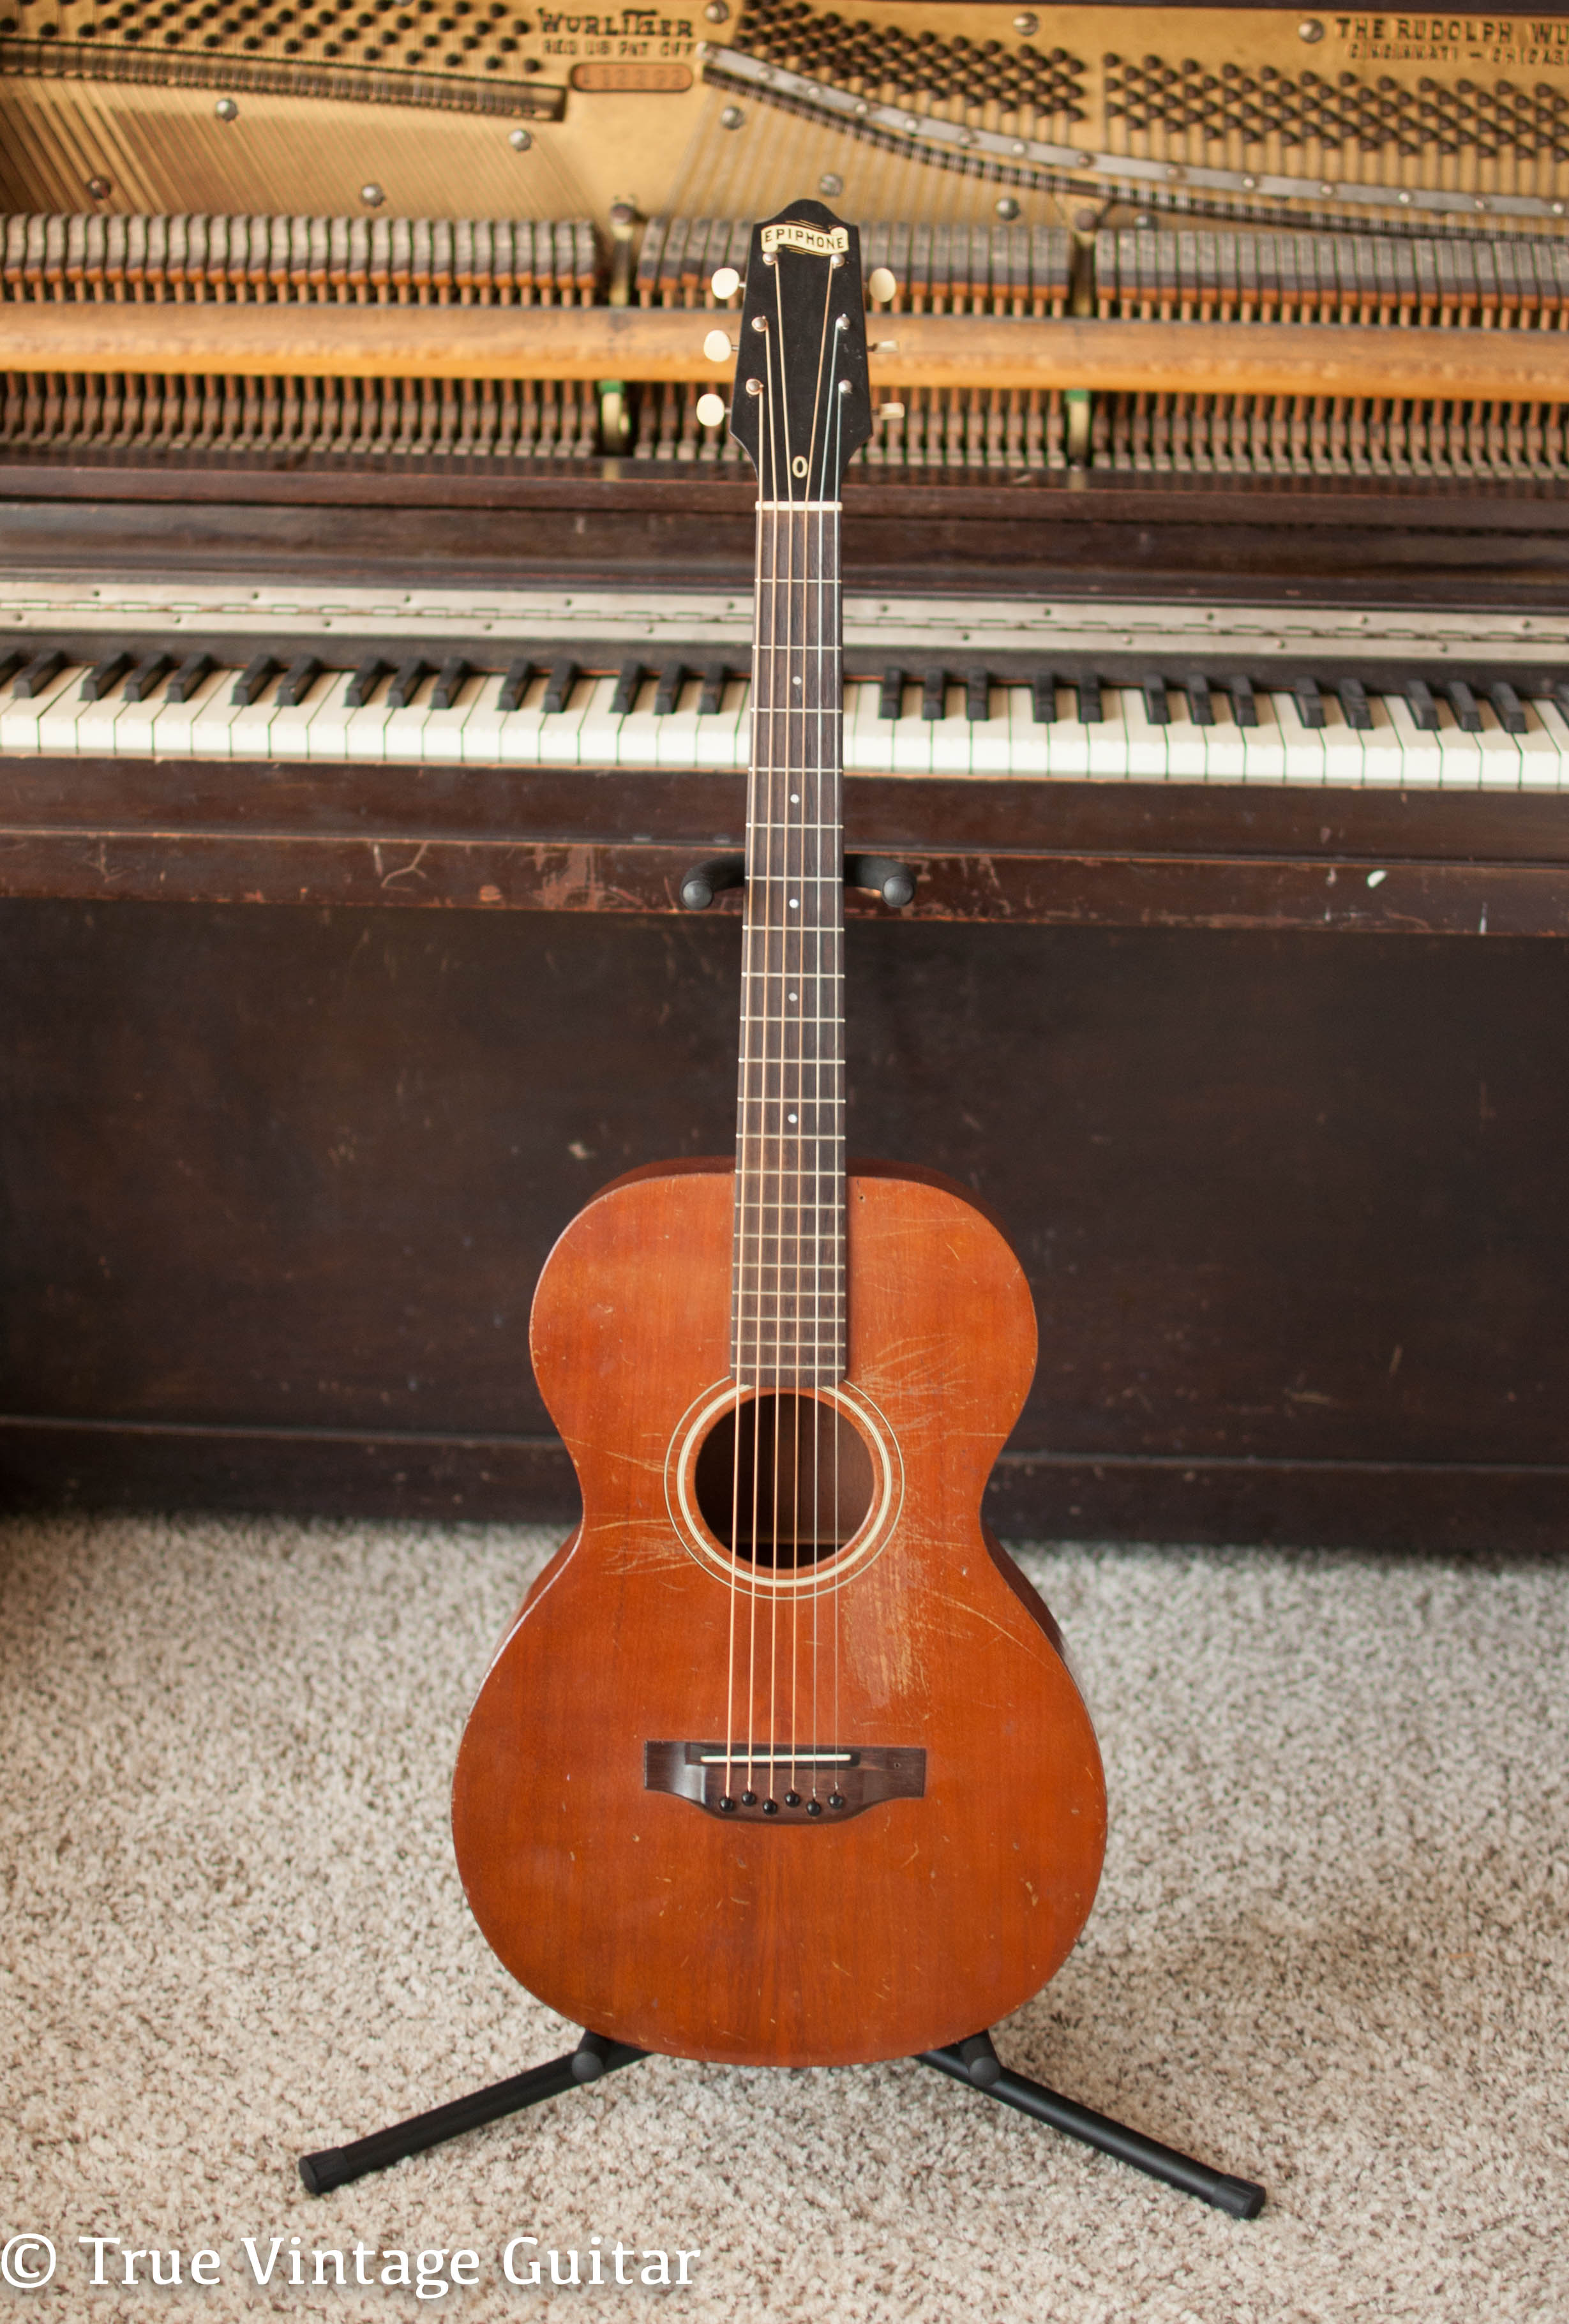 how to find epiphone model number